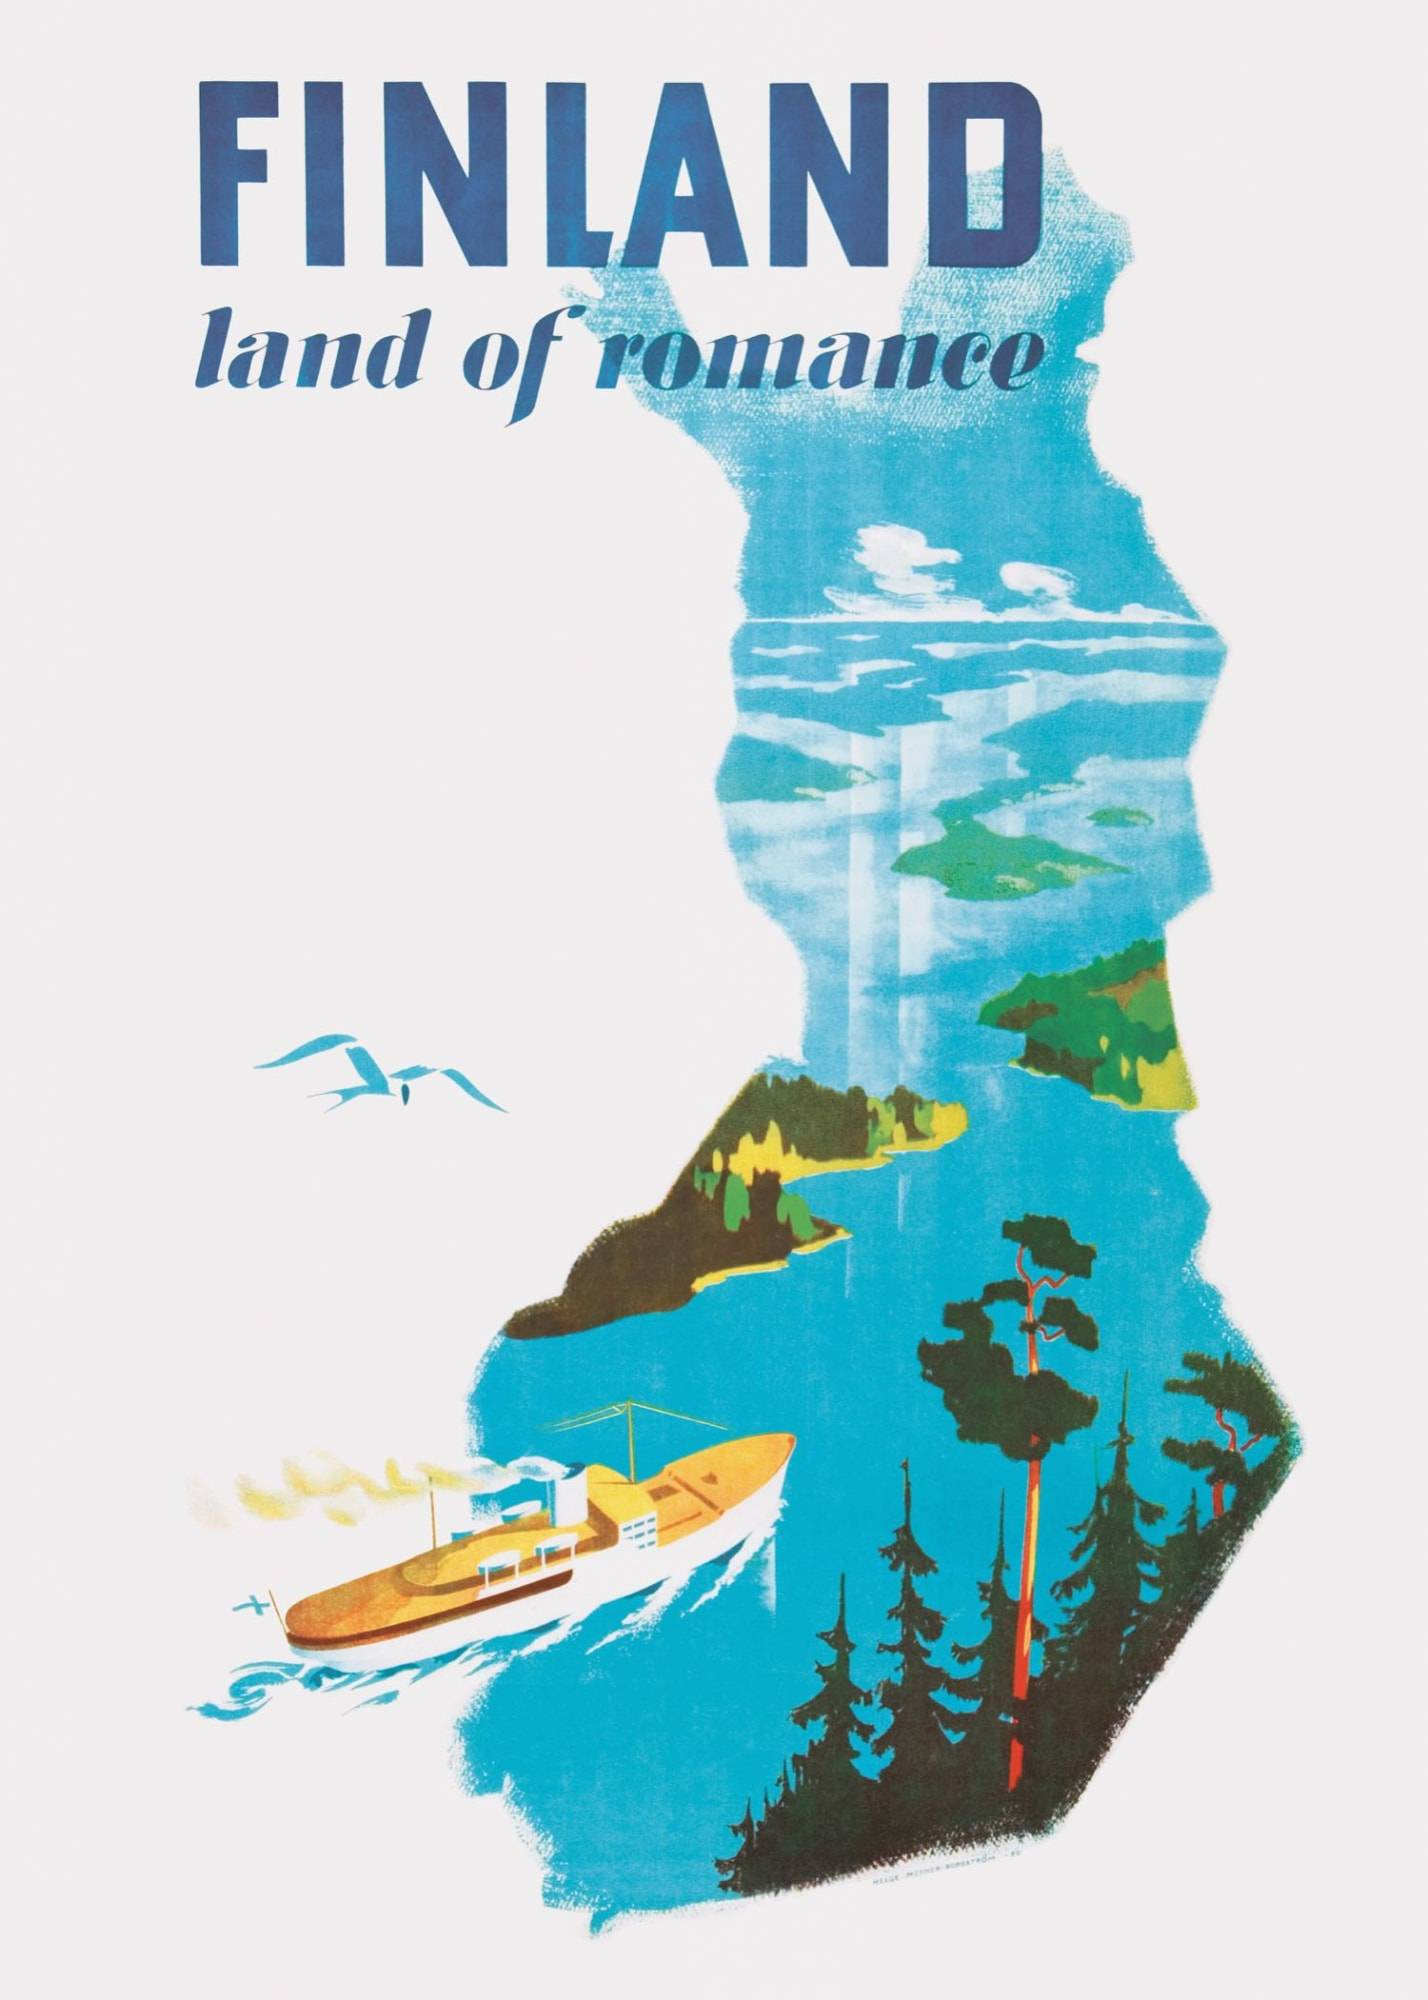 Come to Finland Land of romance 50x70cm juliste